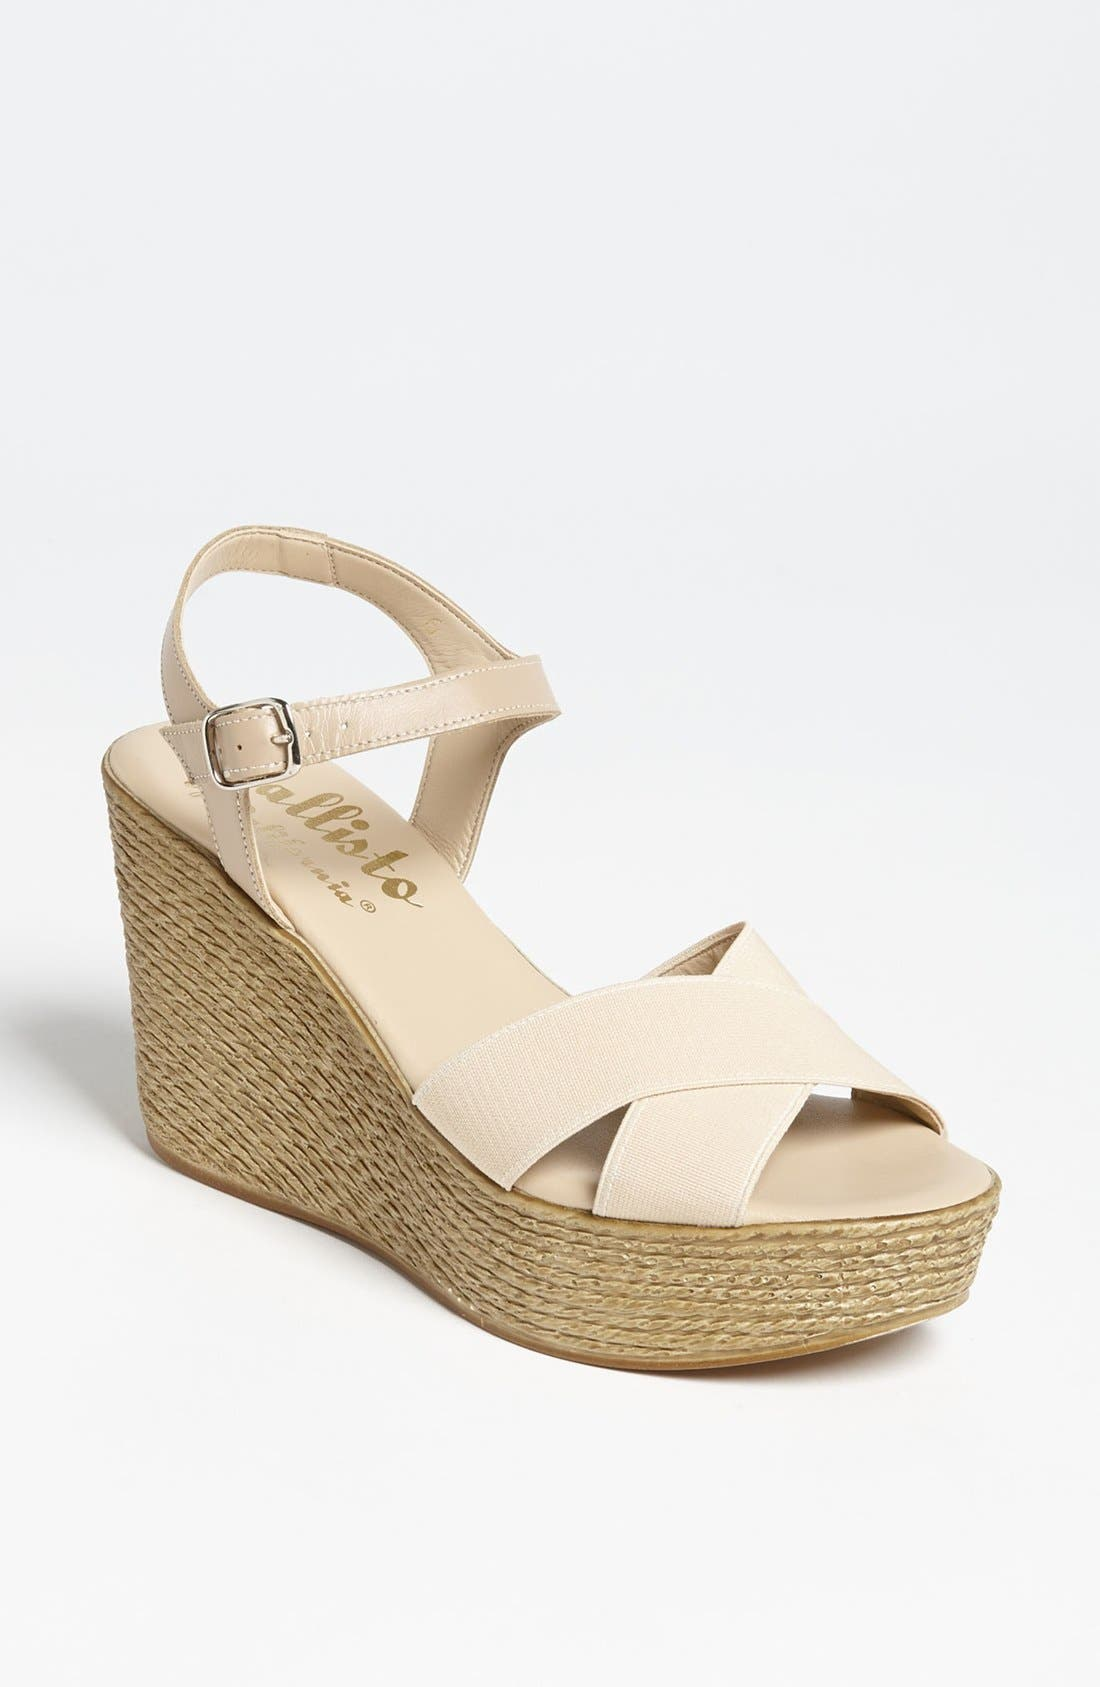 Alternate Image 1 Selected - Callisto 'Olivia' Wedge Sandal